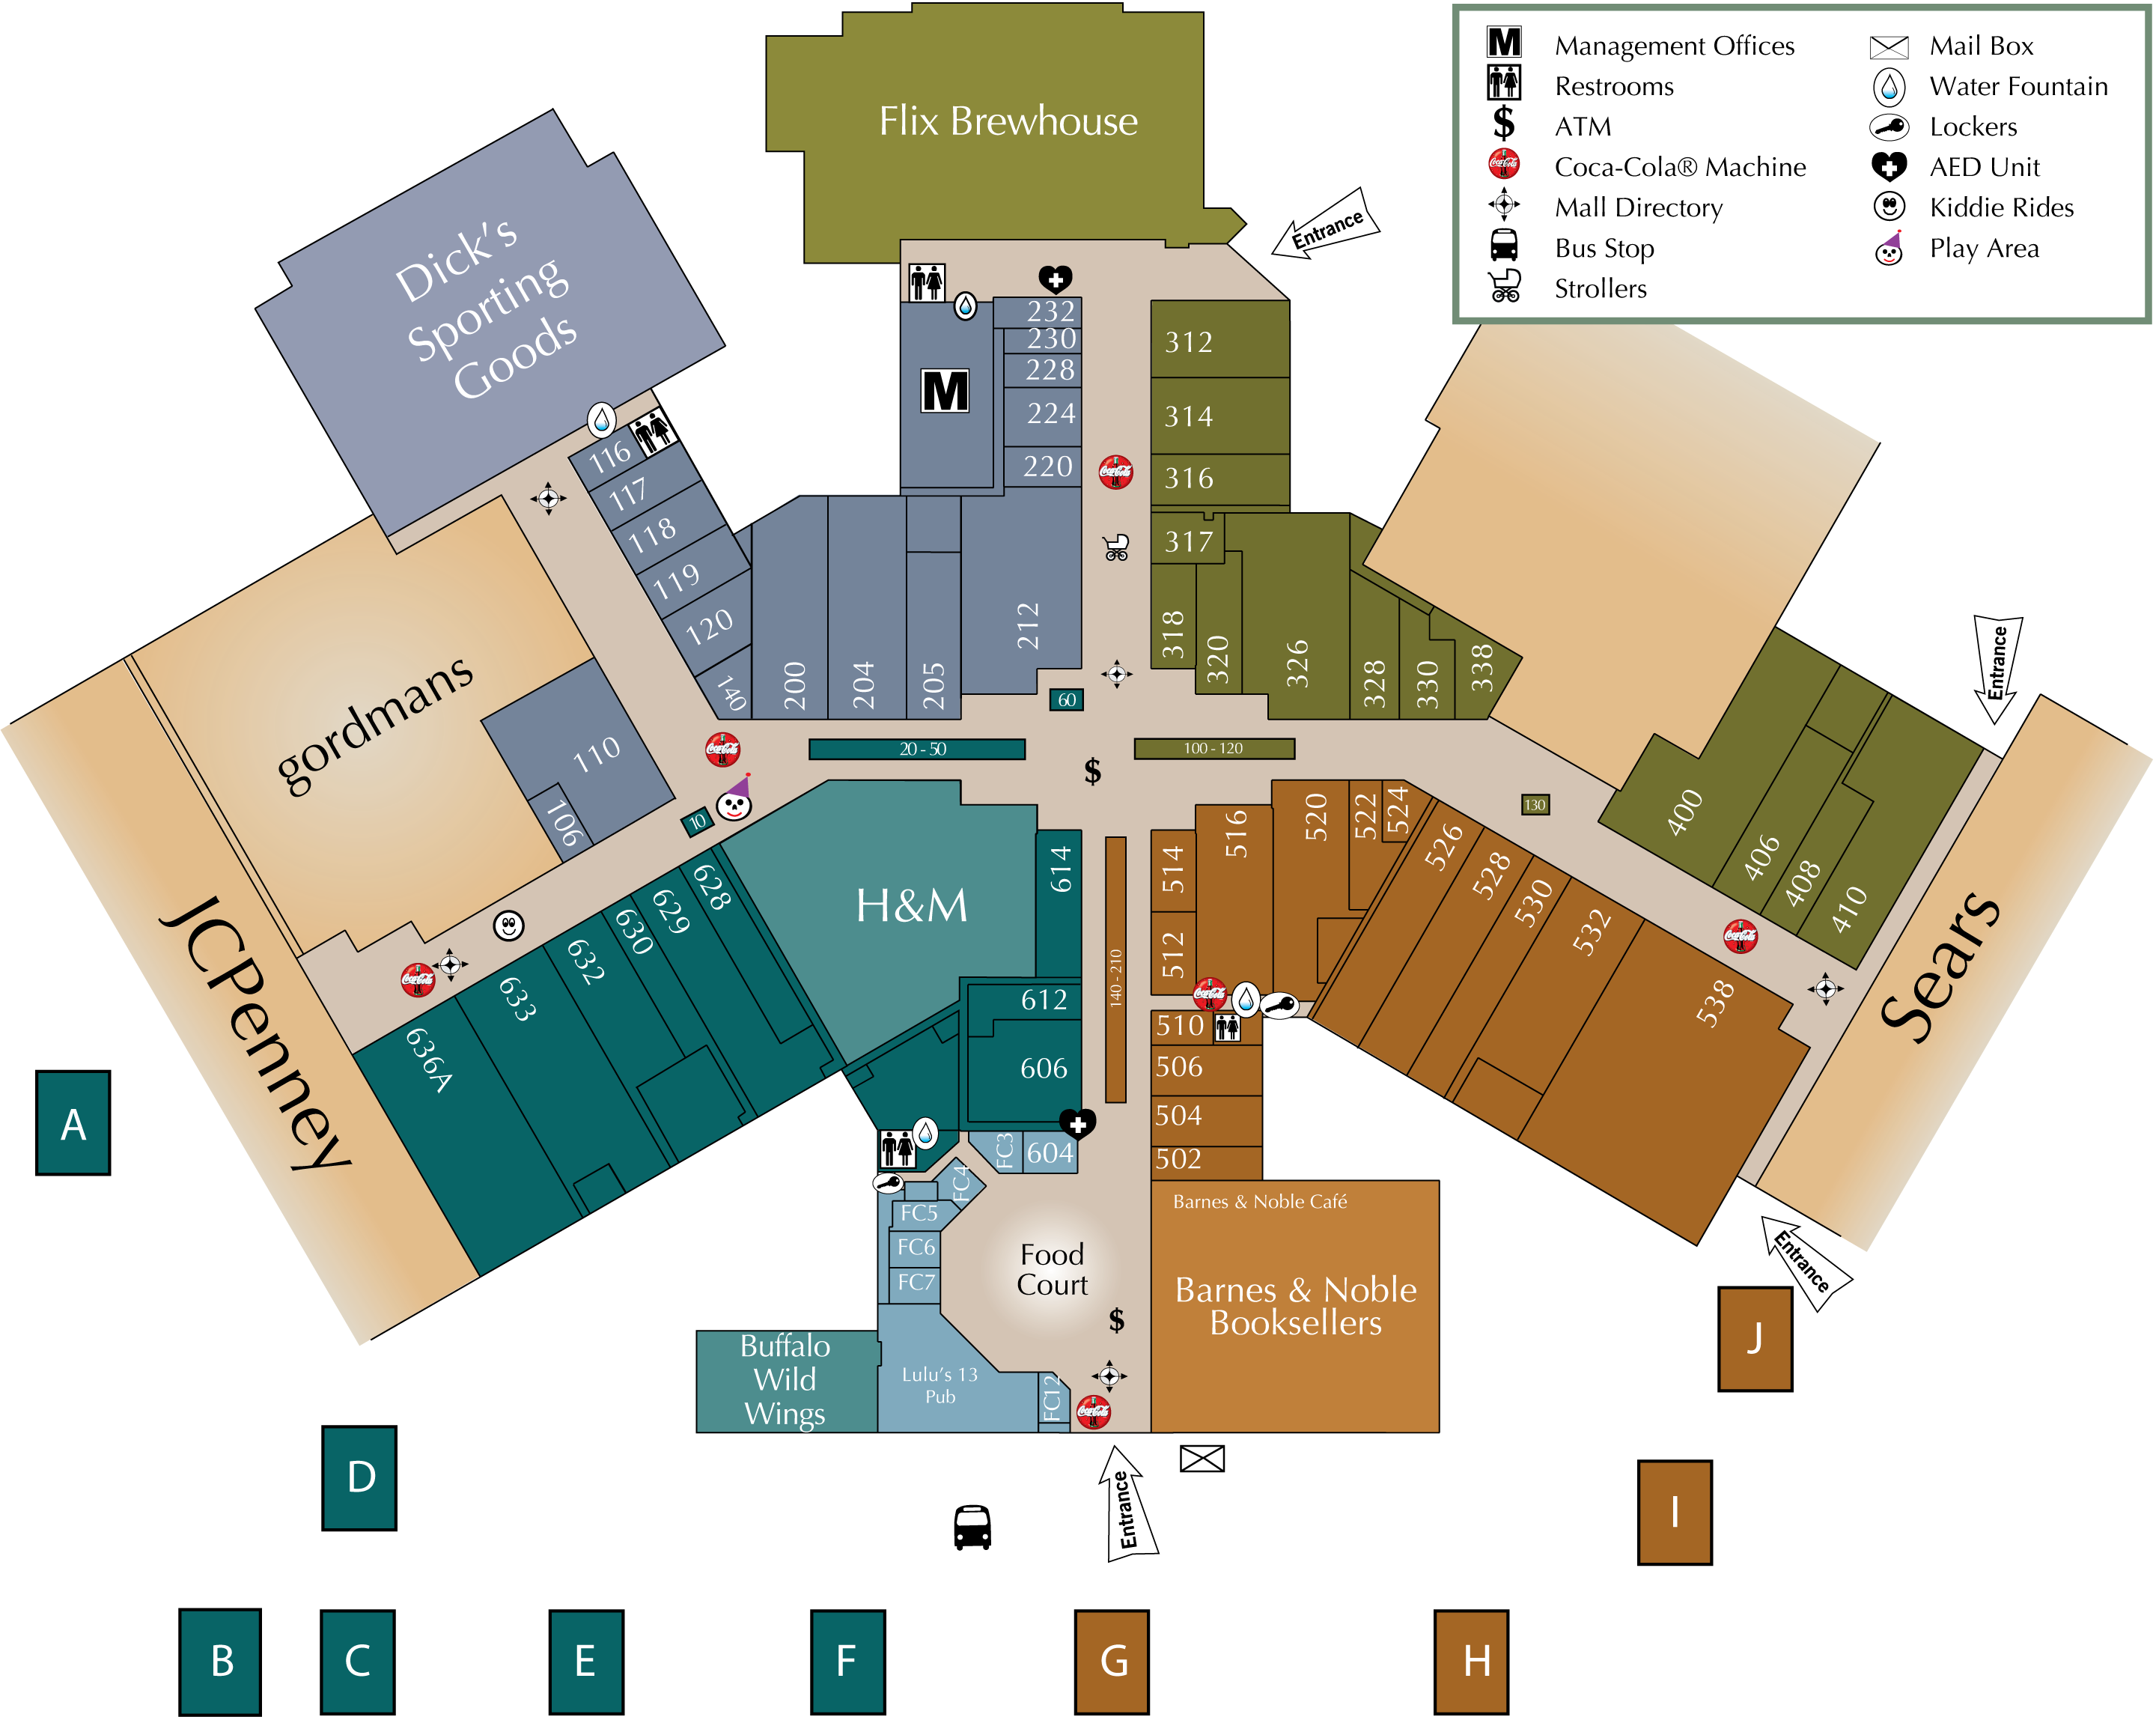 West Towne Mall Map Mall Directory | East Towne Mall West Towne Mall Map